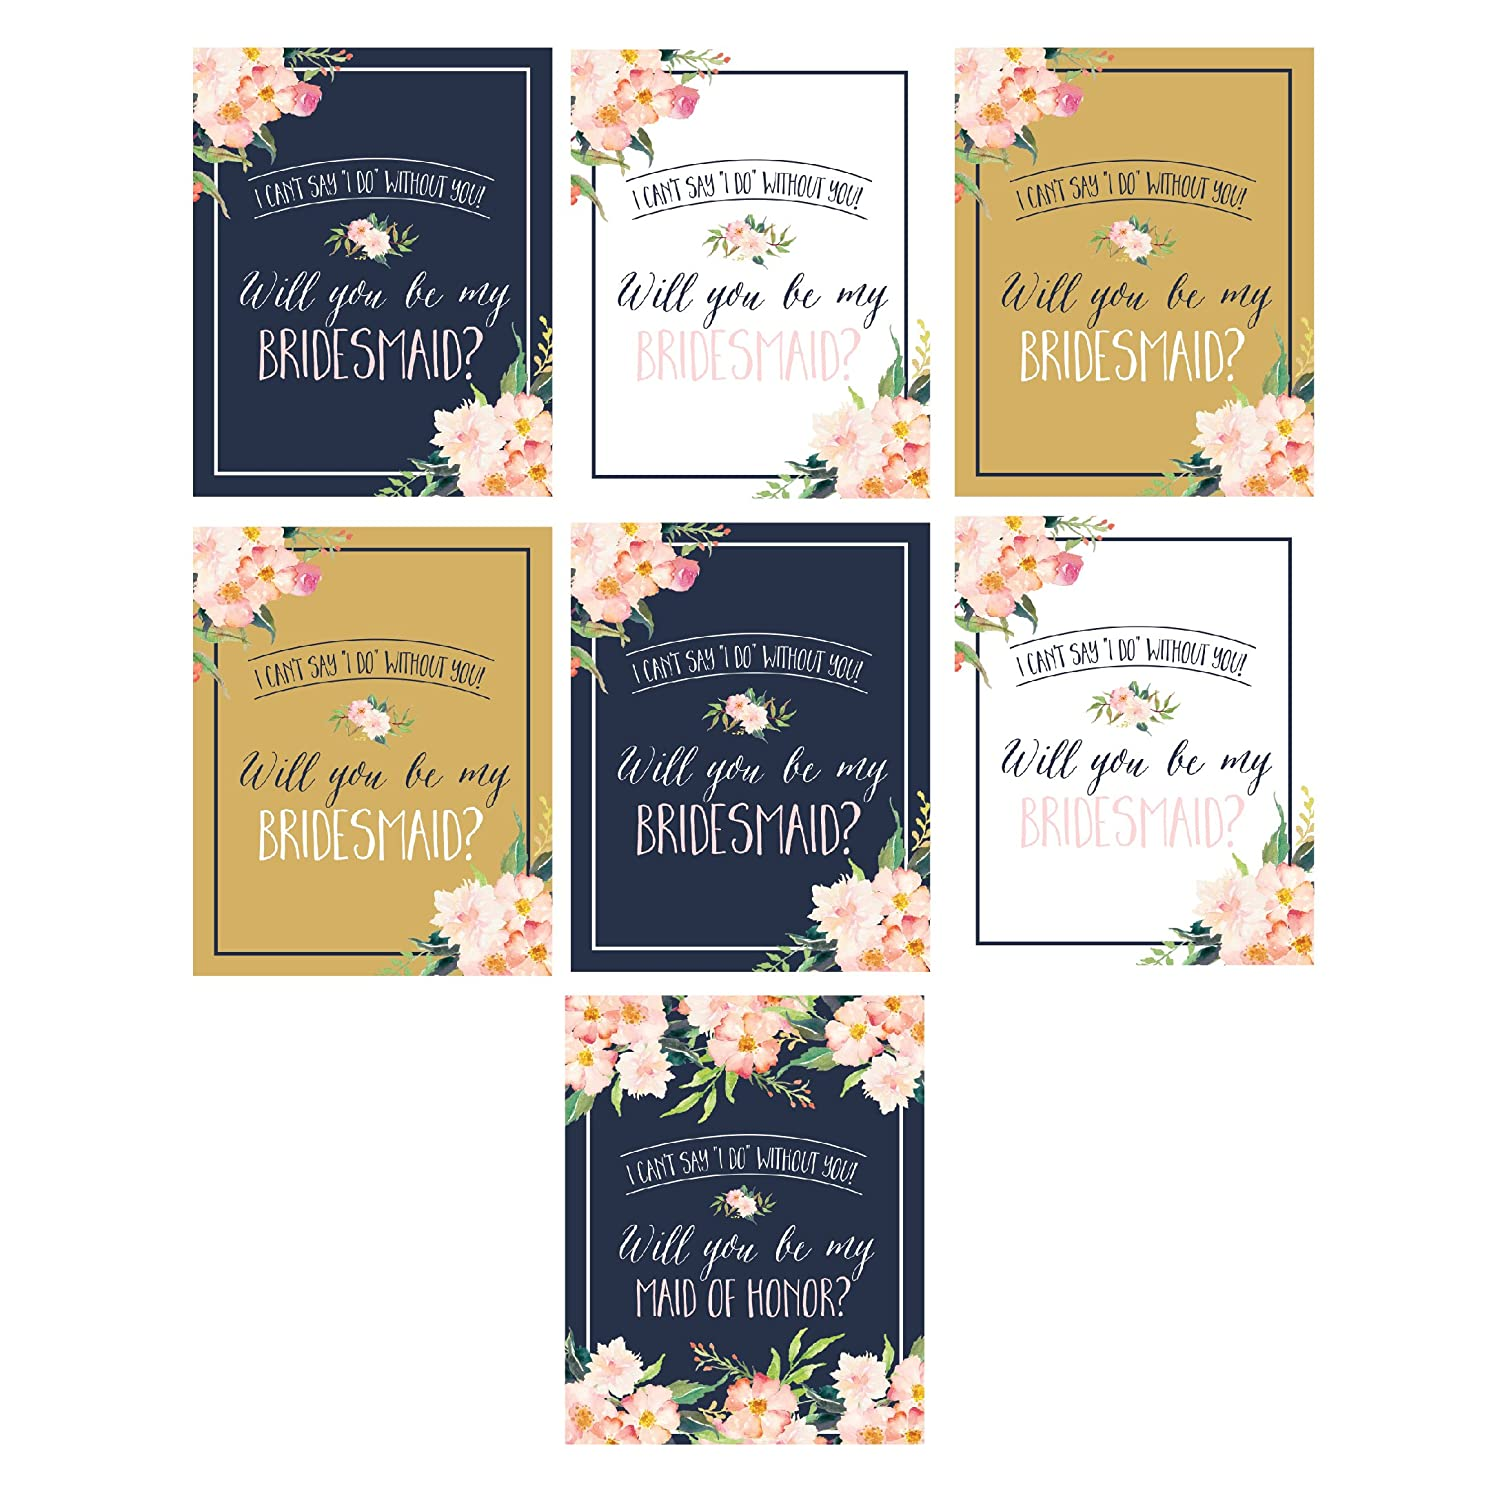 Will You Be My Bridesmaid Stickers or Wine Bottle Labels Bridal Party Maid of Honor Proposal Ideas, Ask Your Bridesmaids To Be In Wedding Gifts, Gold White & Navy I Can't Say I Do Without You Hadley Designs SYNCHKG109338